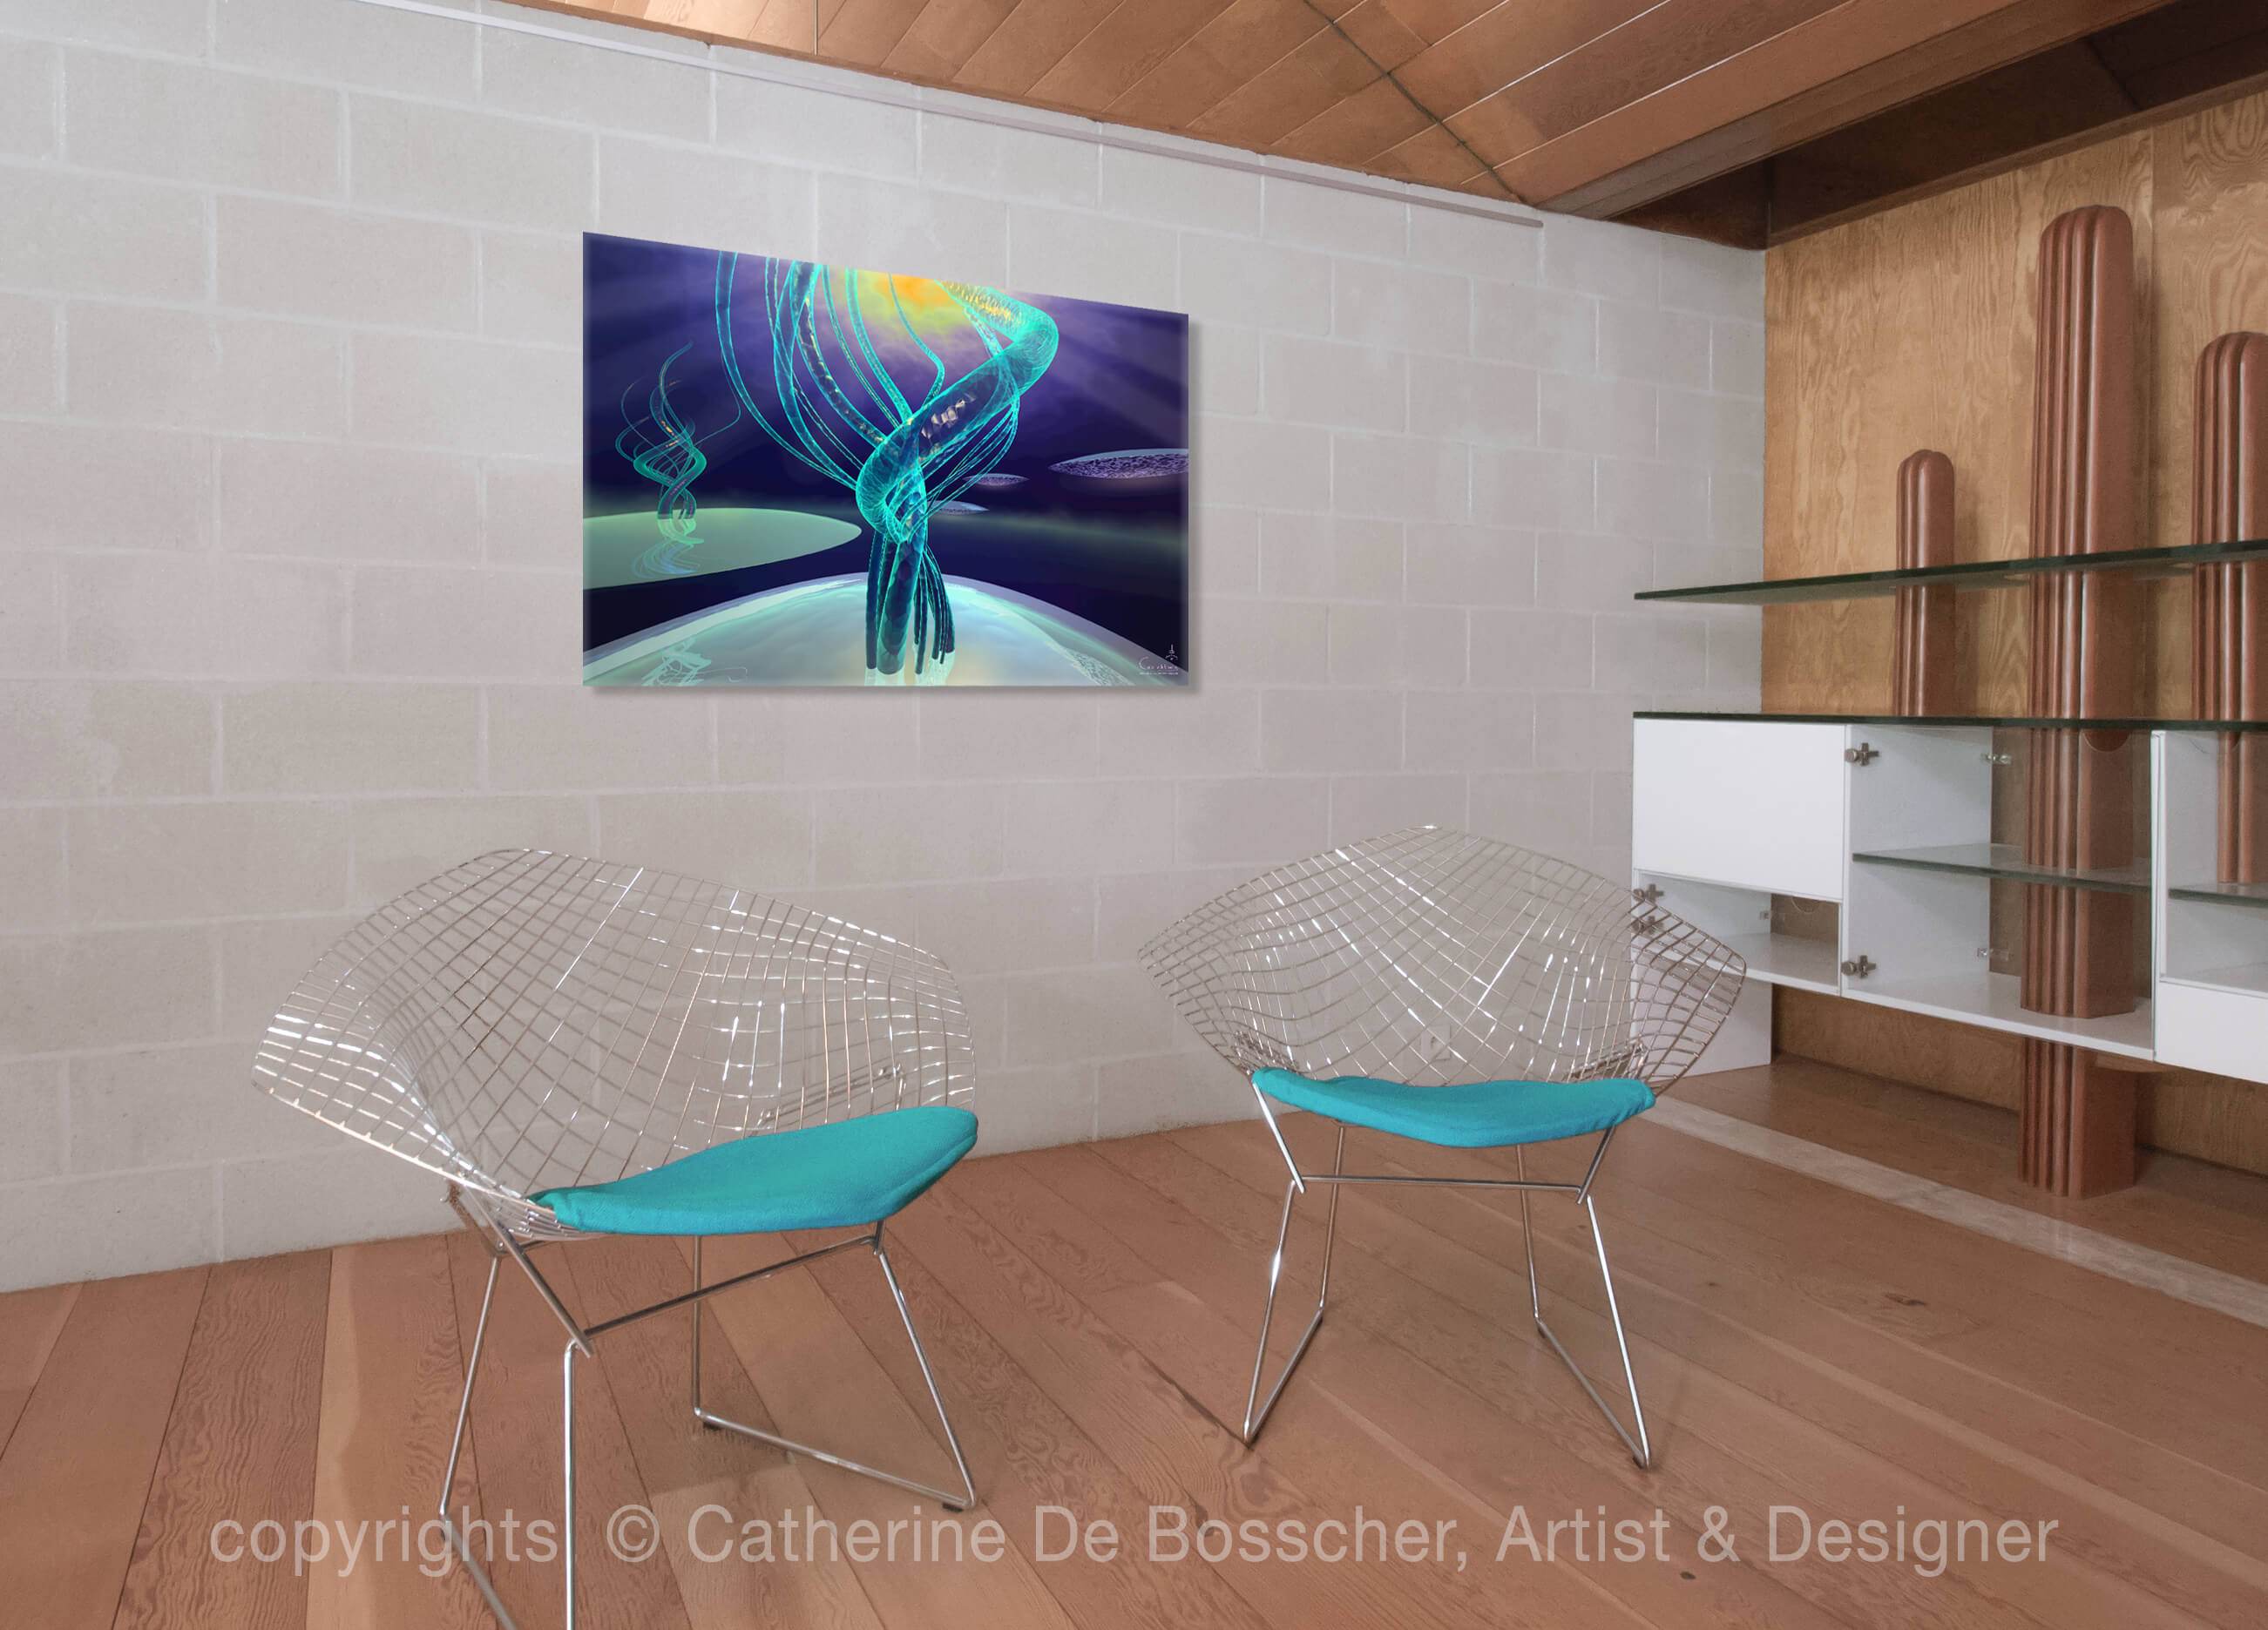 EXOGENESE Artwork  127 x 80 cm by Catherine De Bosscher